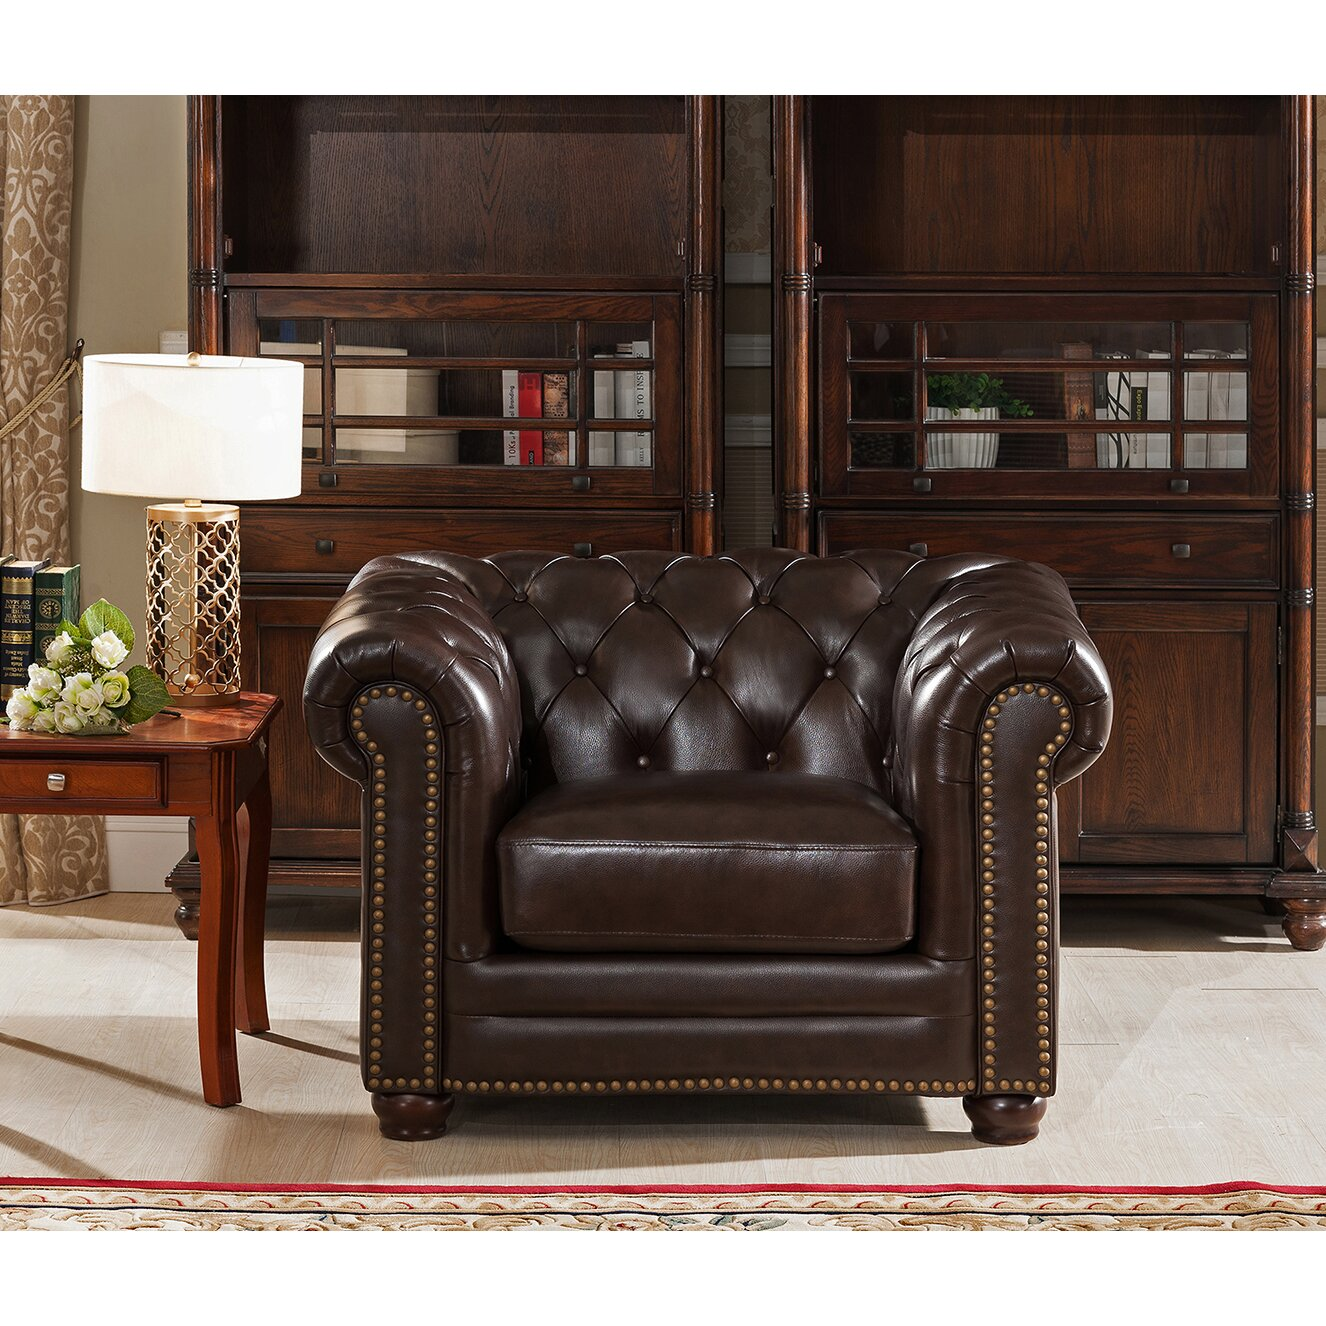 Amax Kensington Top Grain Leather Chesterfield Sofa and Chair Wayfair